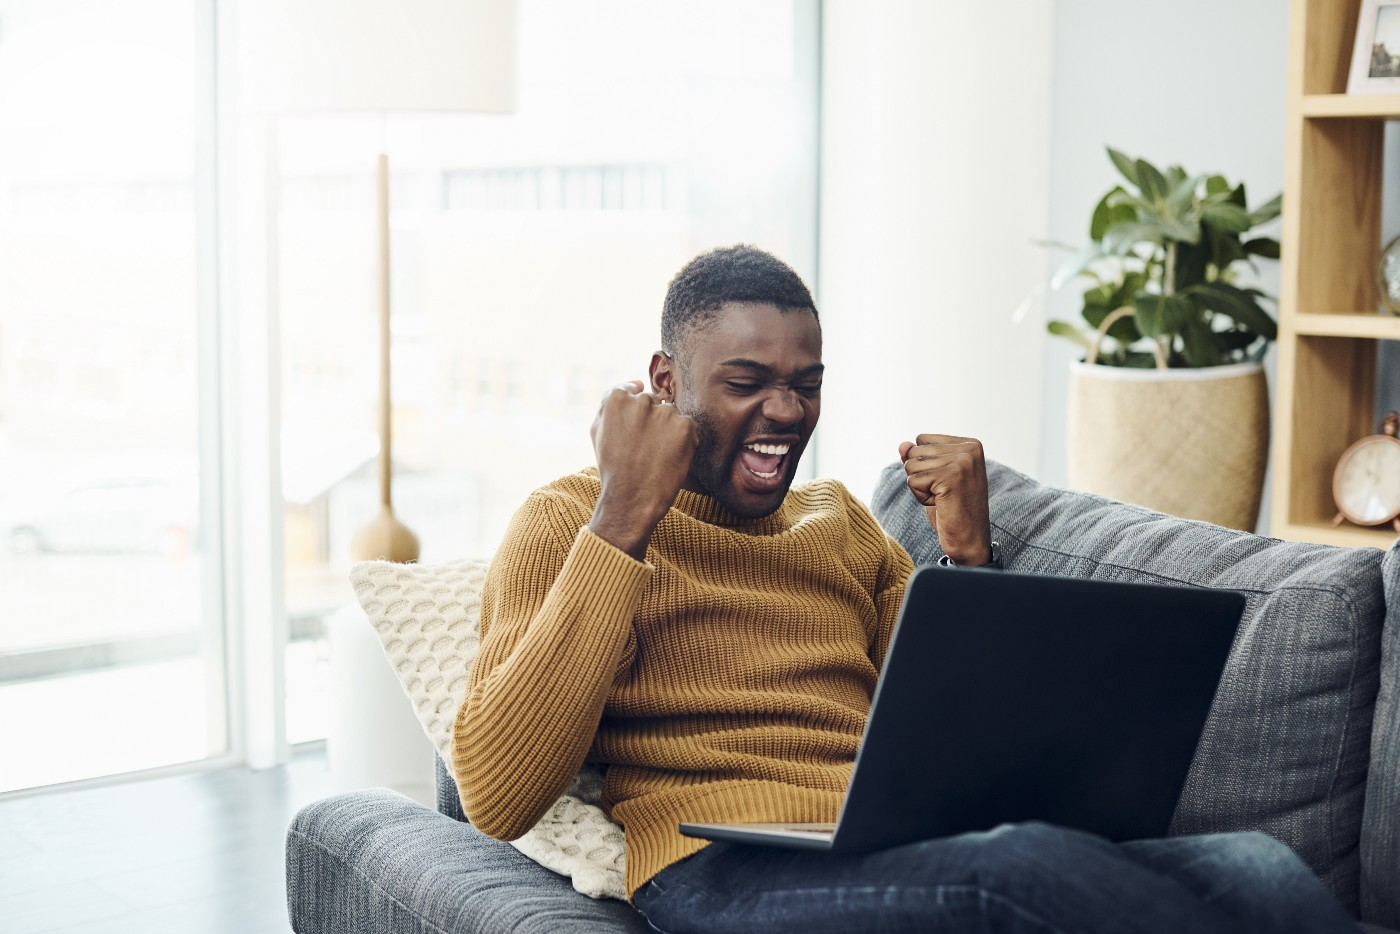 A young man cheers while using a laptop at home on his couch.